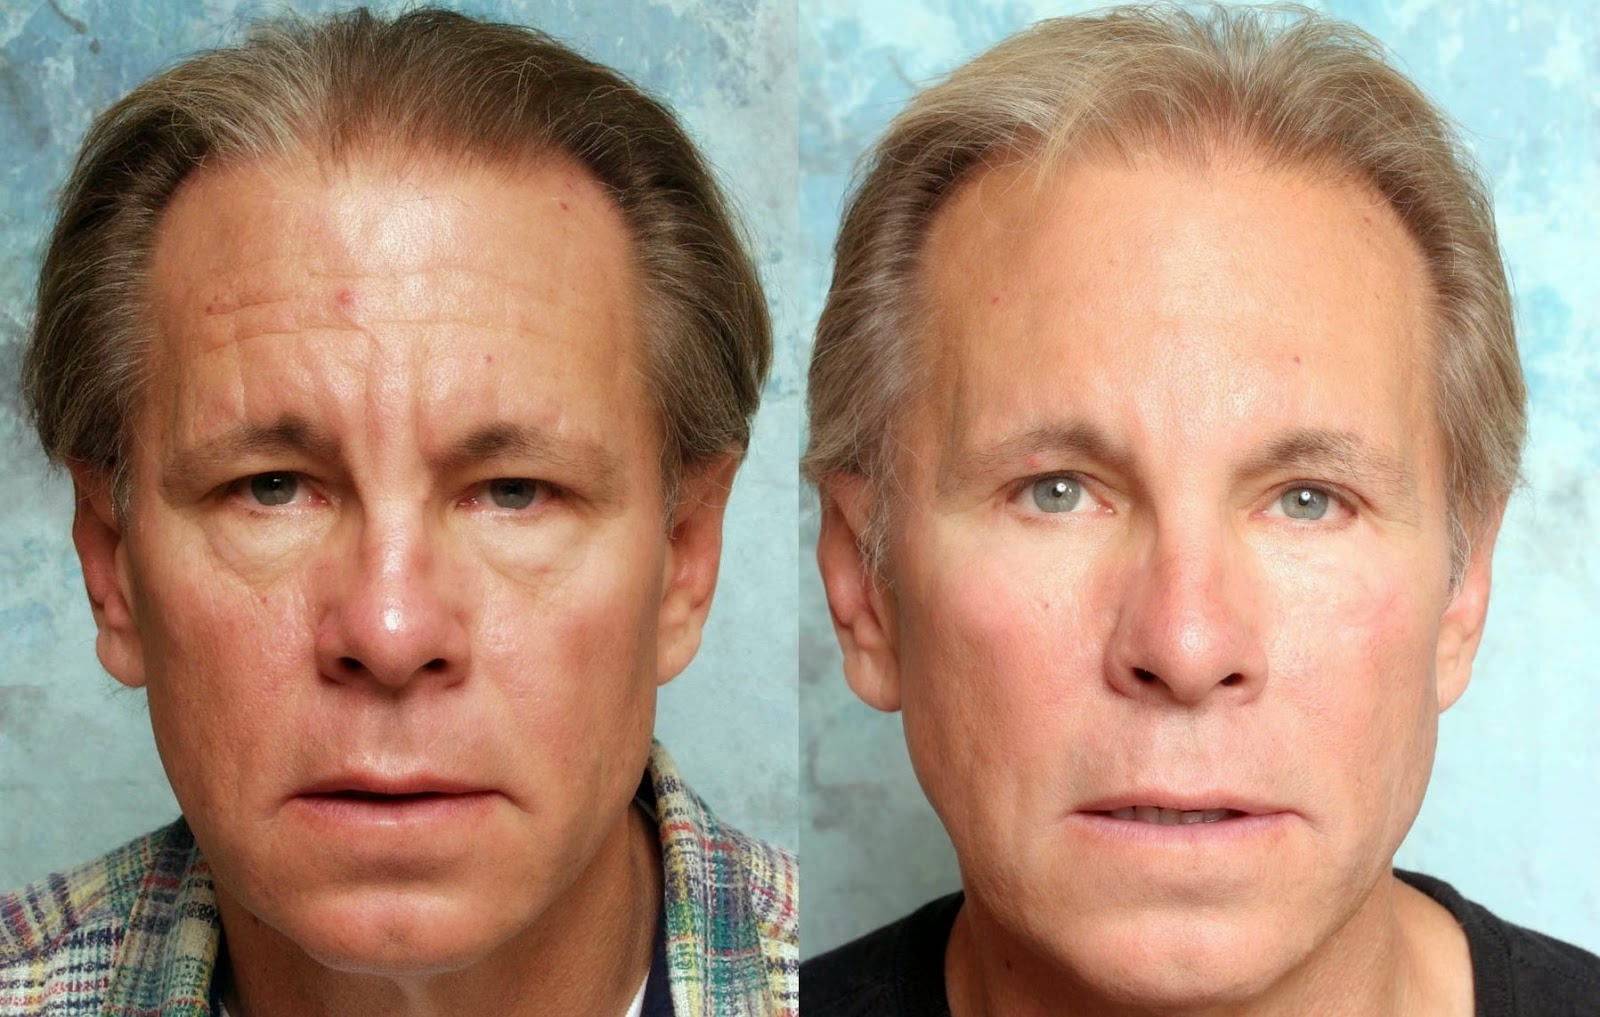 from Chaim facial exercises before and after